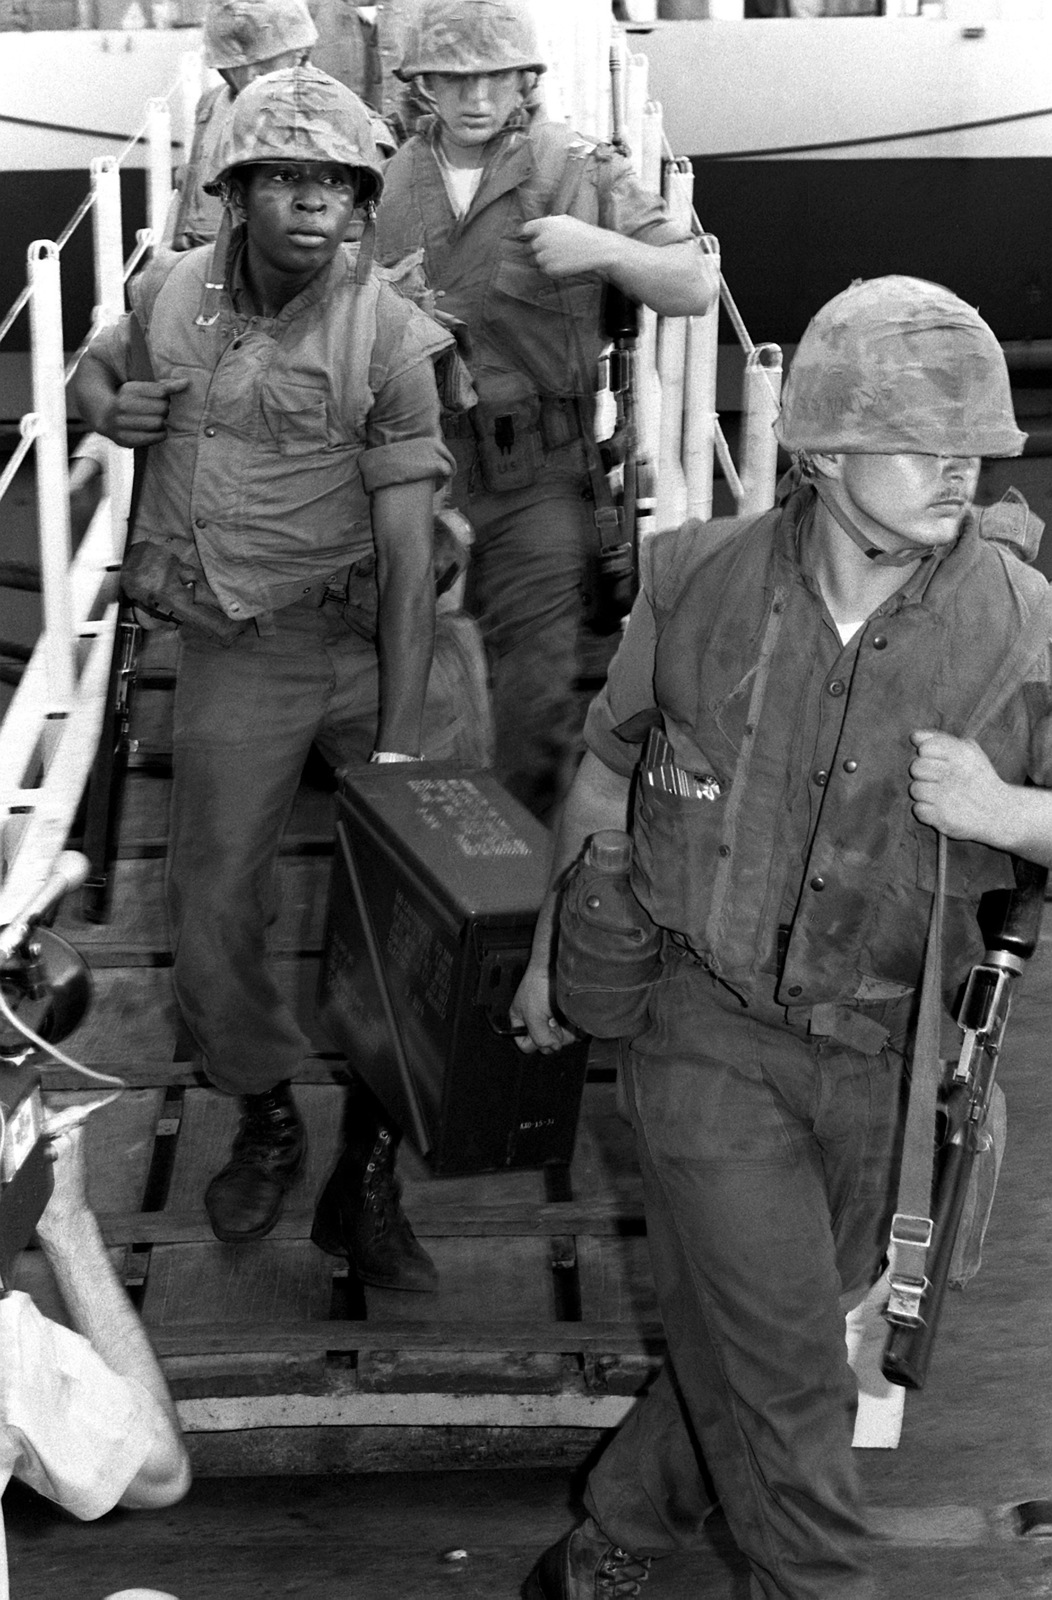 U.S. Marines from Co. G and Co. E, 2nd Bn., 9th Marines, depart the aircraft carrier USS CORAL SEA (CV-43) following the rescue operation of the merchant vessel SS MAYAGUEZ and the Kon Tang Island Operation